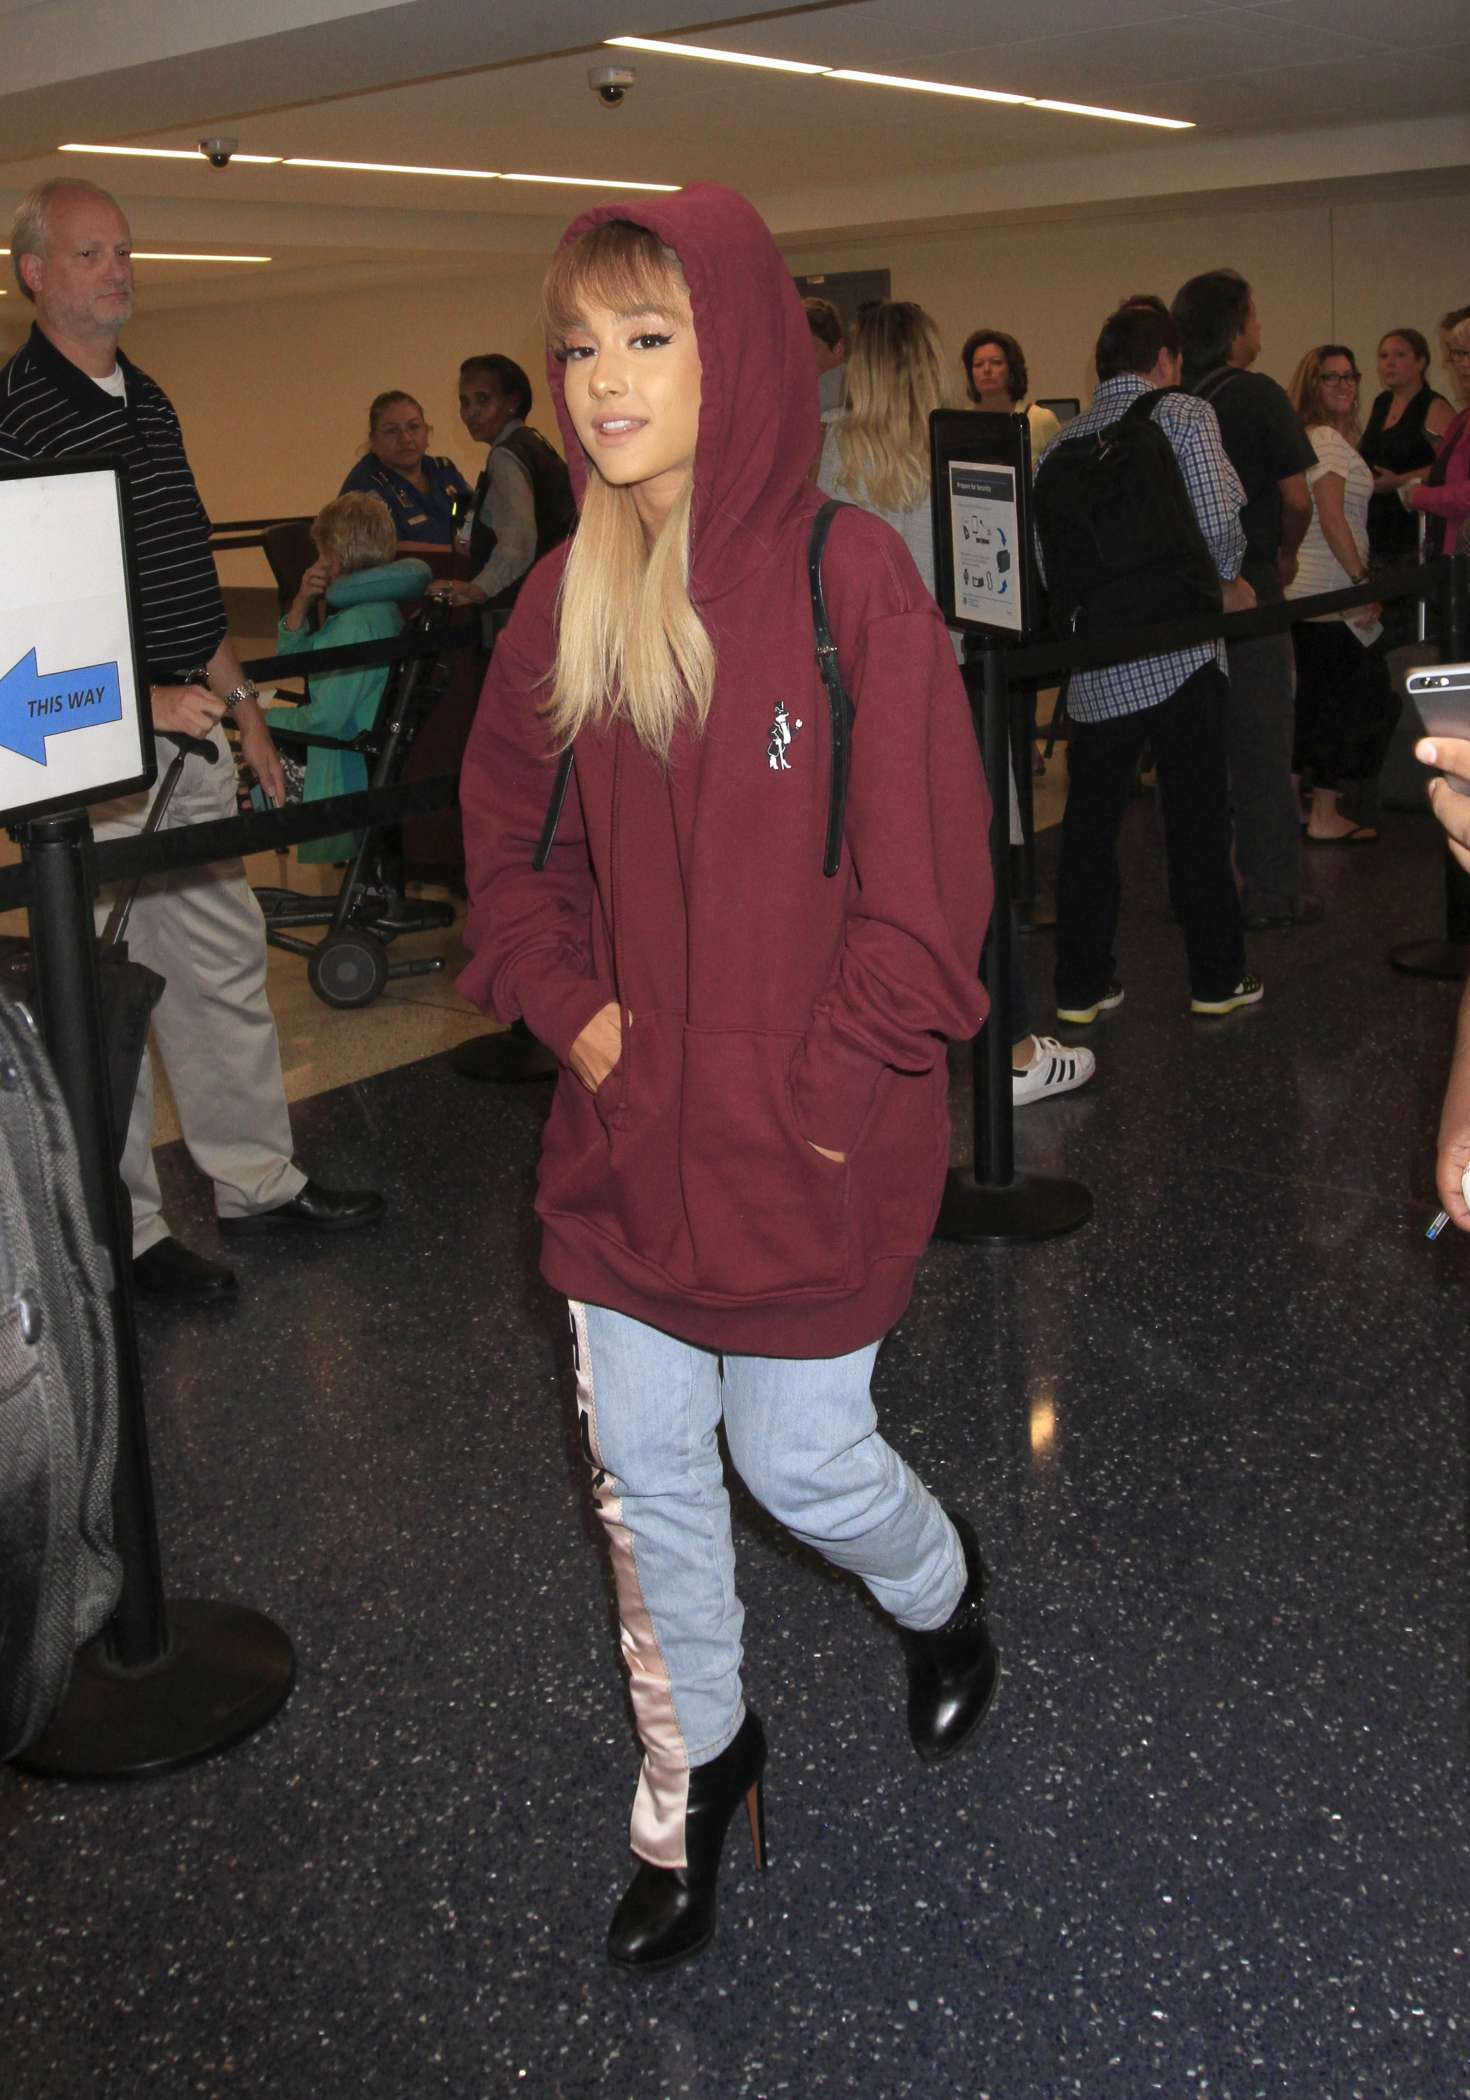 Ariana Grande Arrives at LAX Airport -02 - GotCeleb